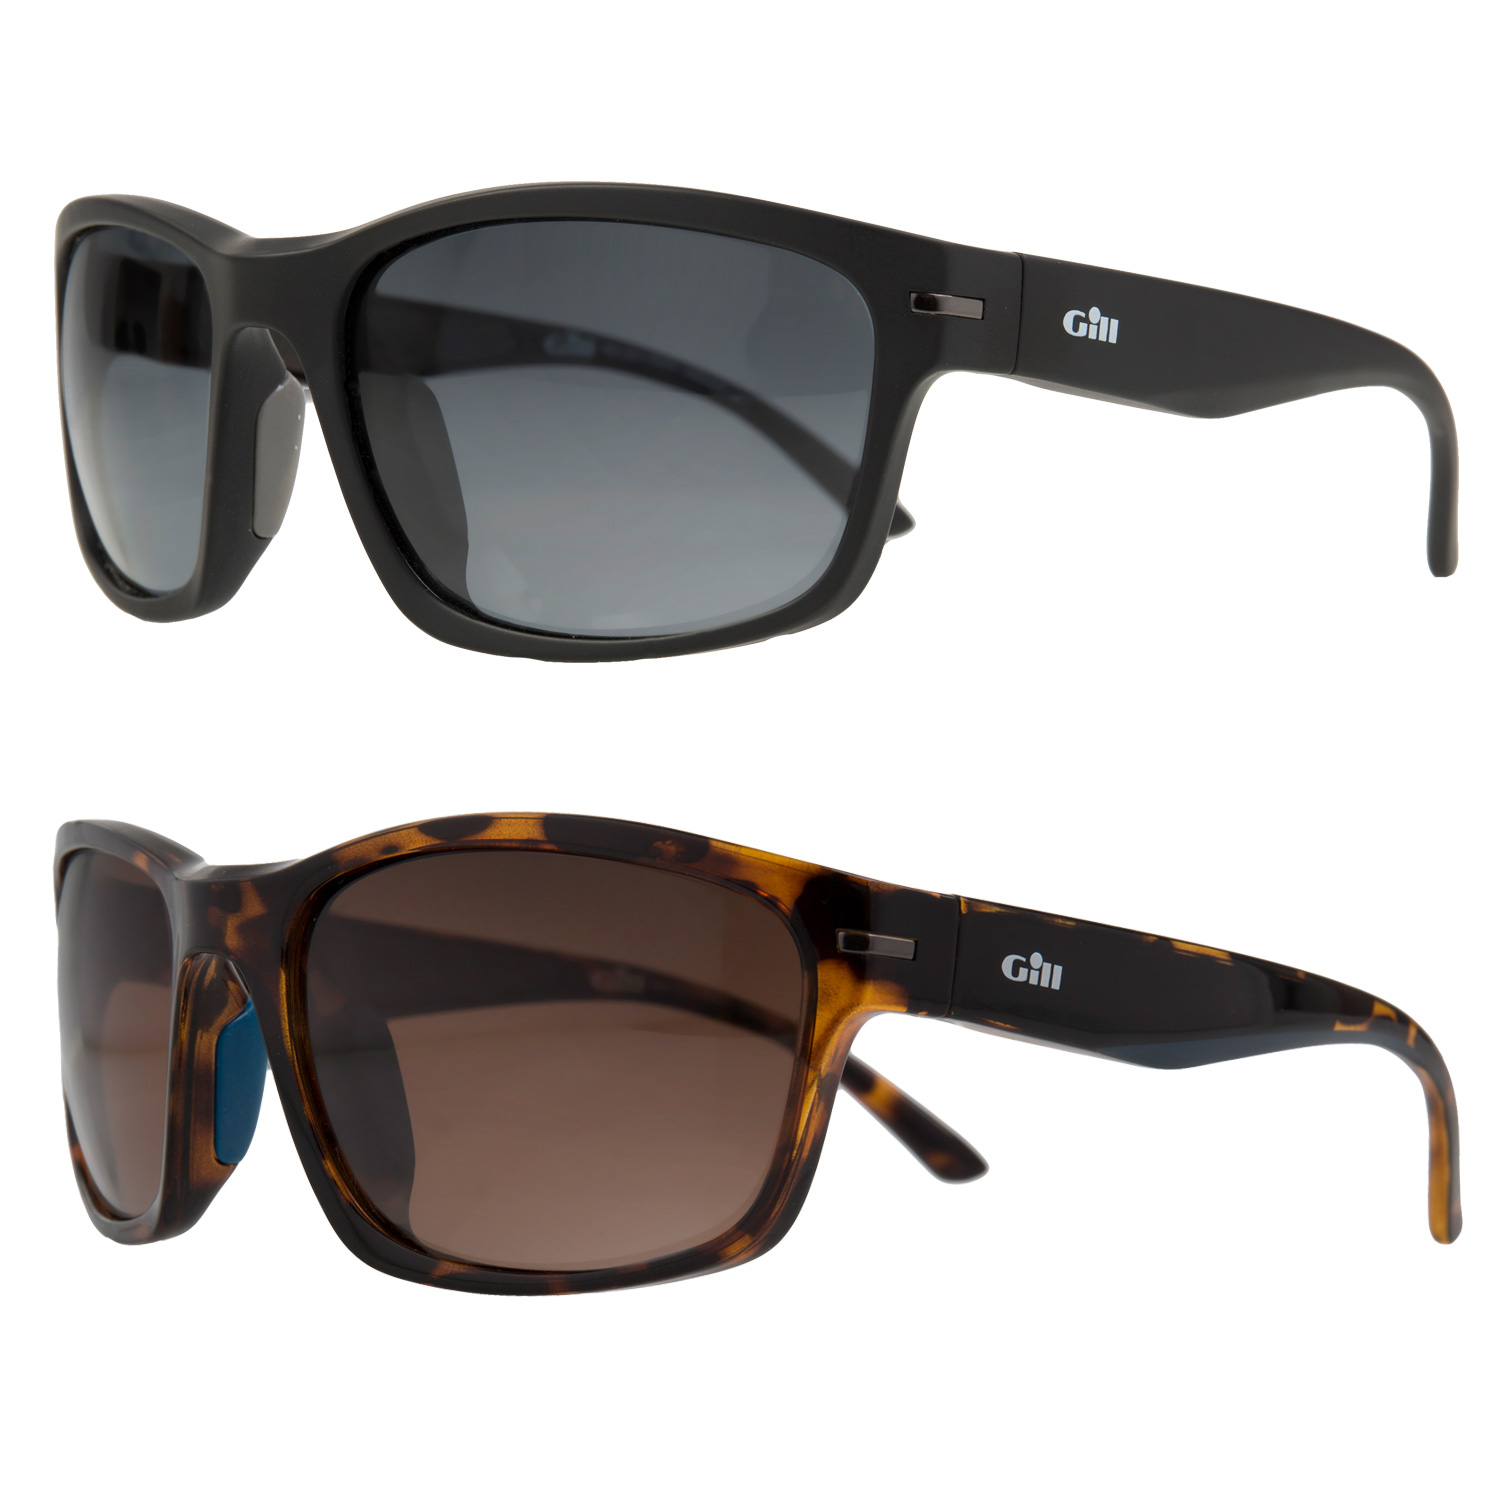 2ffca5ac96 Details about Gill Reflex II Sunglasses Black Tortoise Sailing Floating UV  Protection